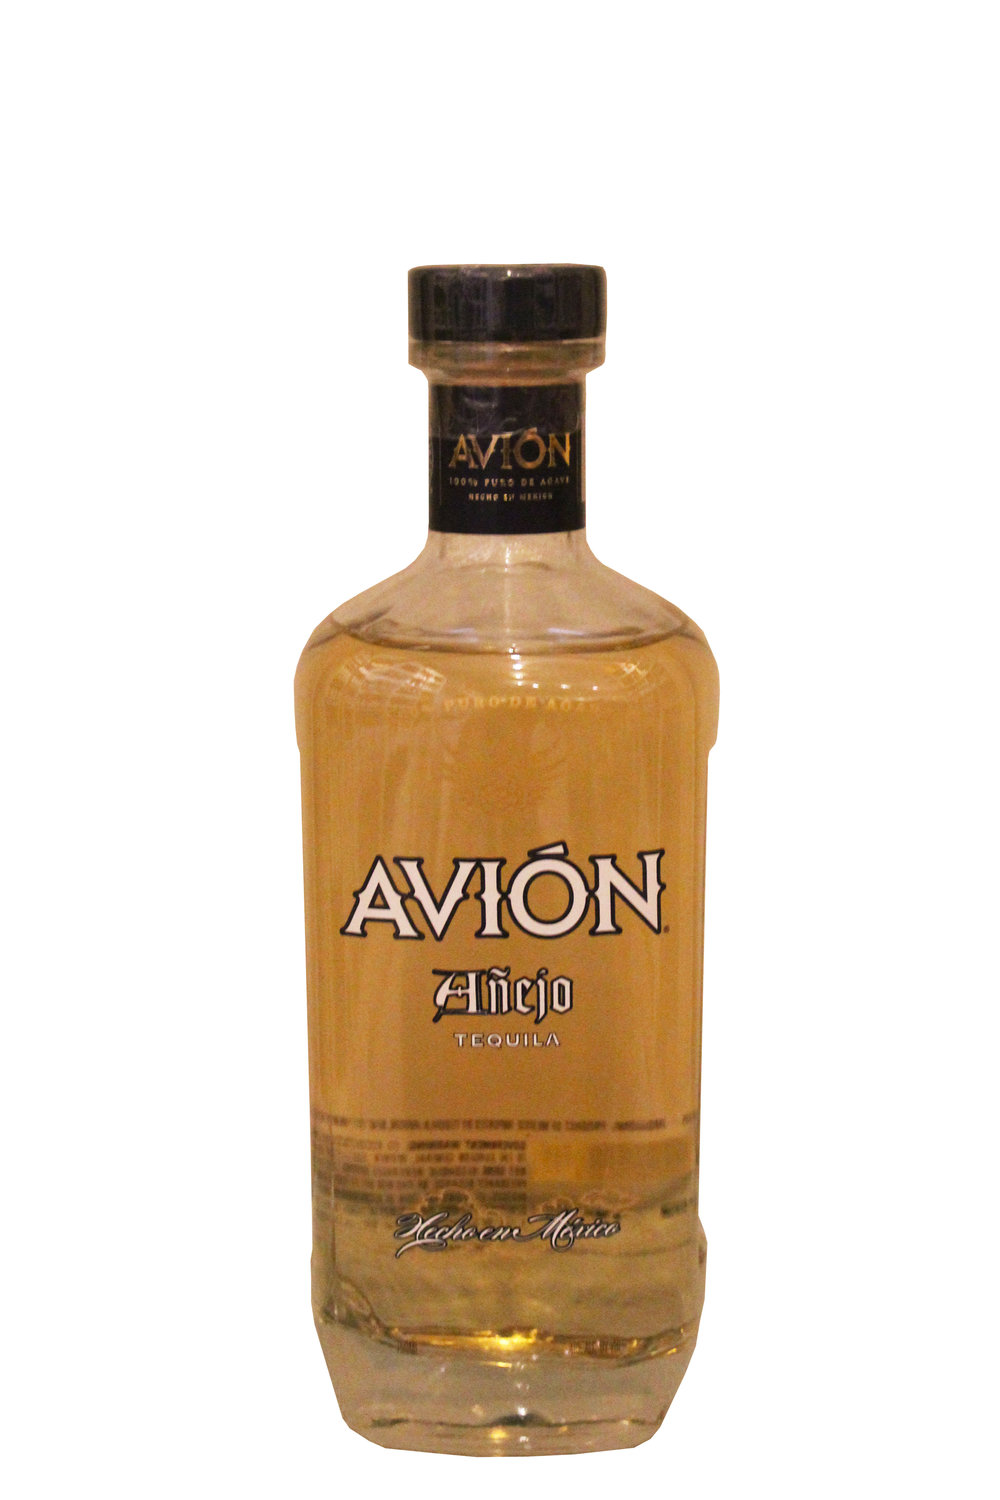 Traditional Anejo Tequila Avion, Mexico